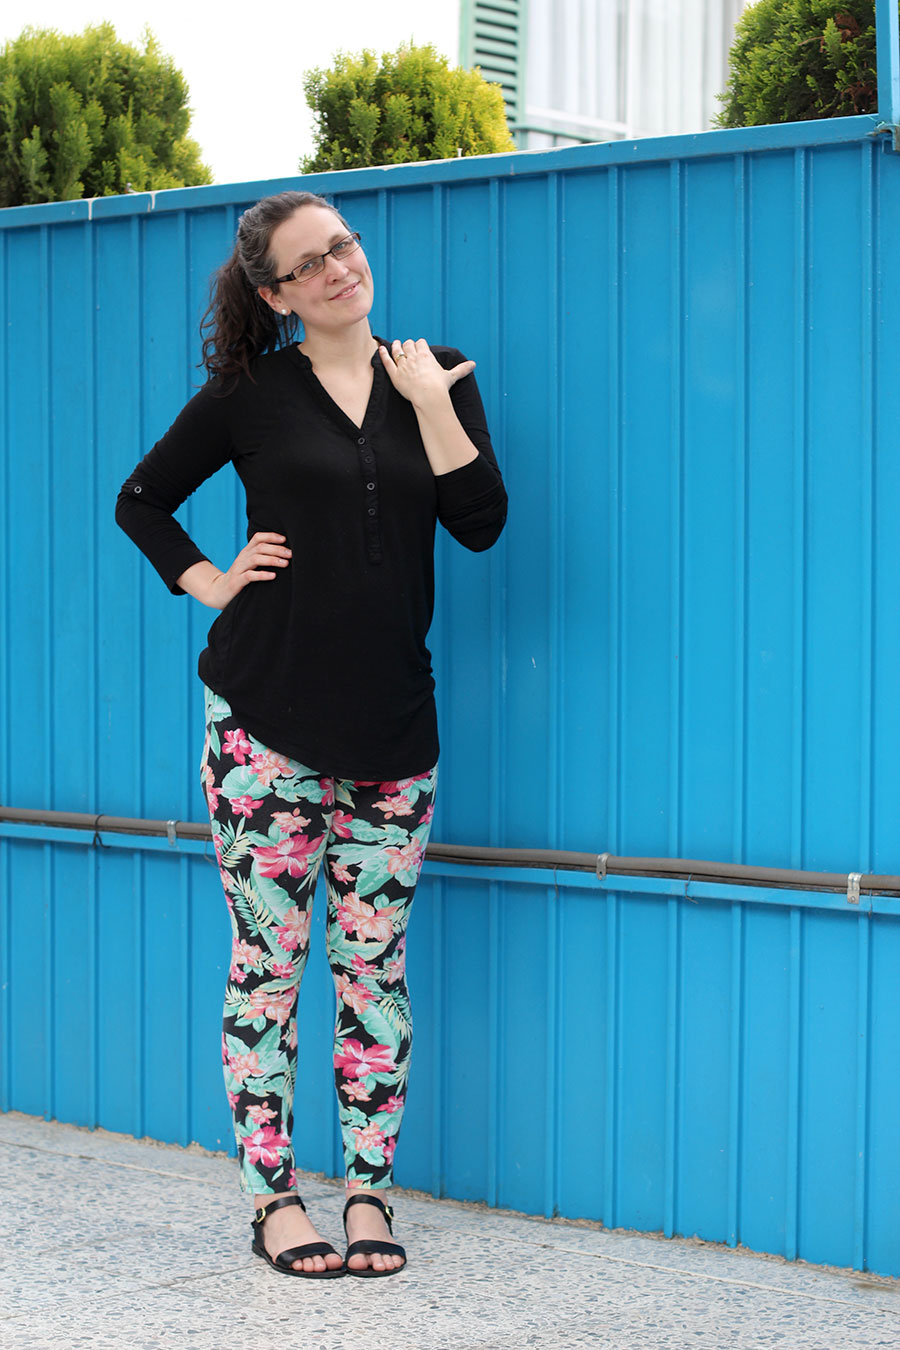 Super fun and comfortable outfit for a busy mom. Flat sandals, floral leggings, and a loose black shirt.